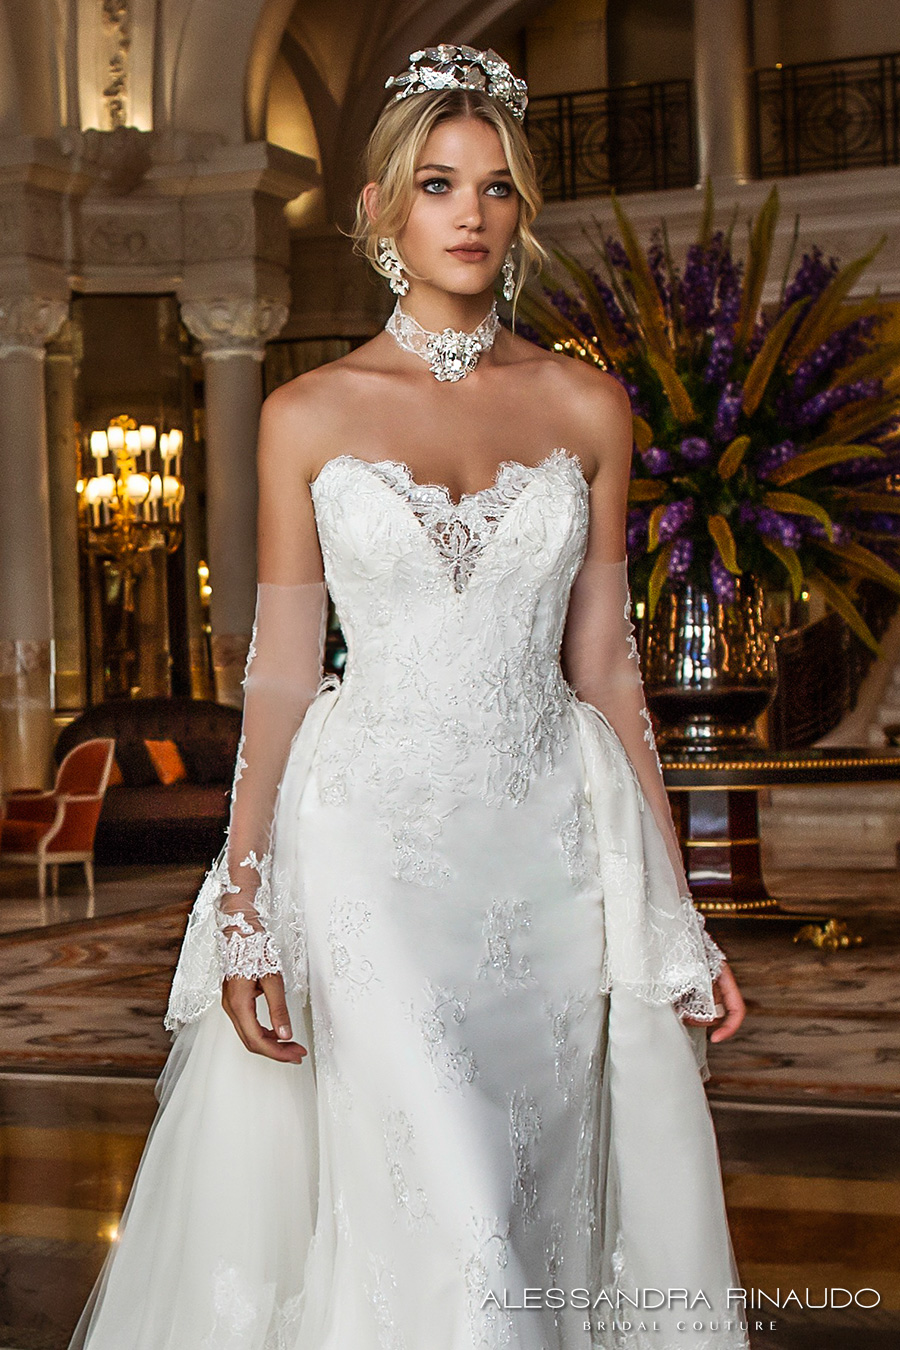 Alessandra rinaudo 2017 wedding dresses gorgeous italian for V neck strapless wedding dress